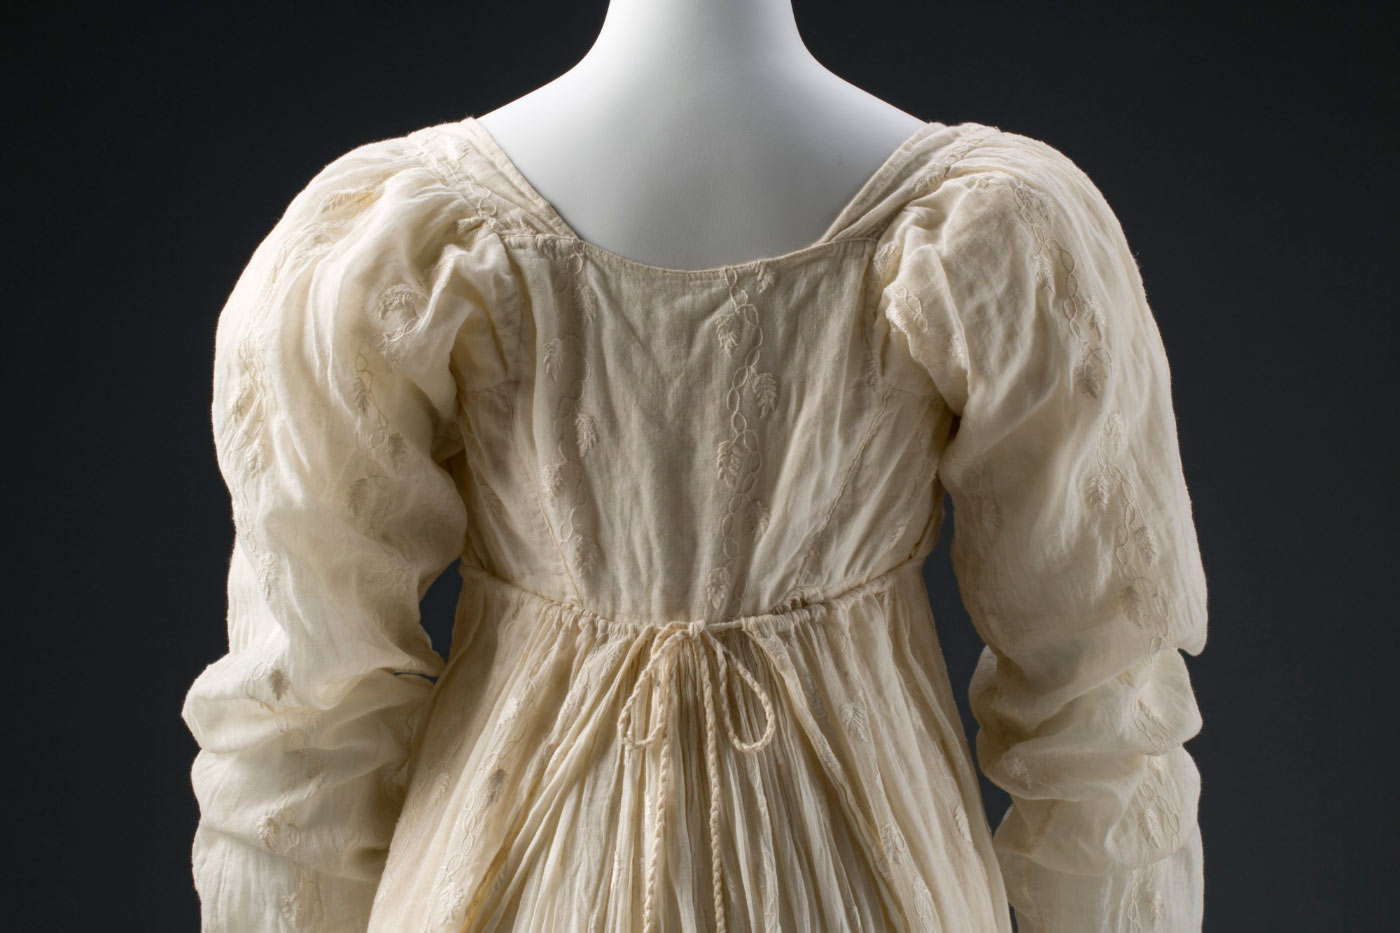 Back view of a muslin dress with an embroidered leaf pattern. - click to view larger image